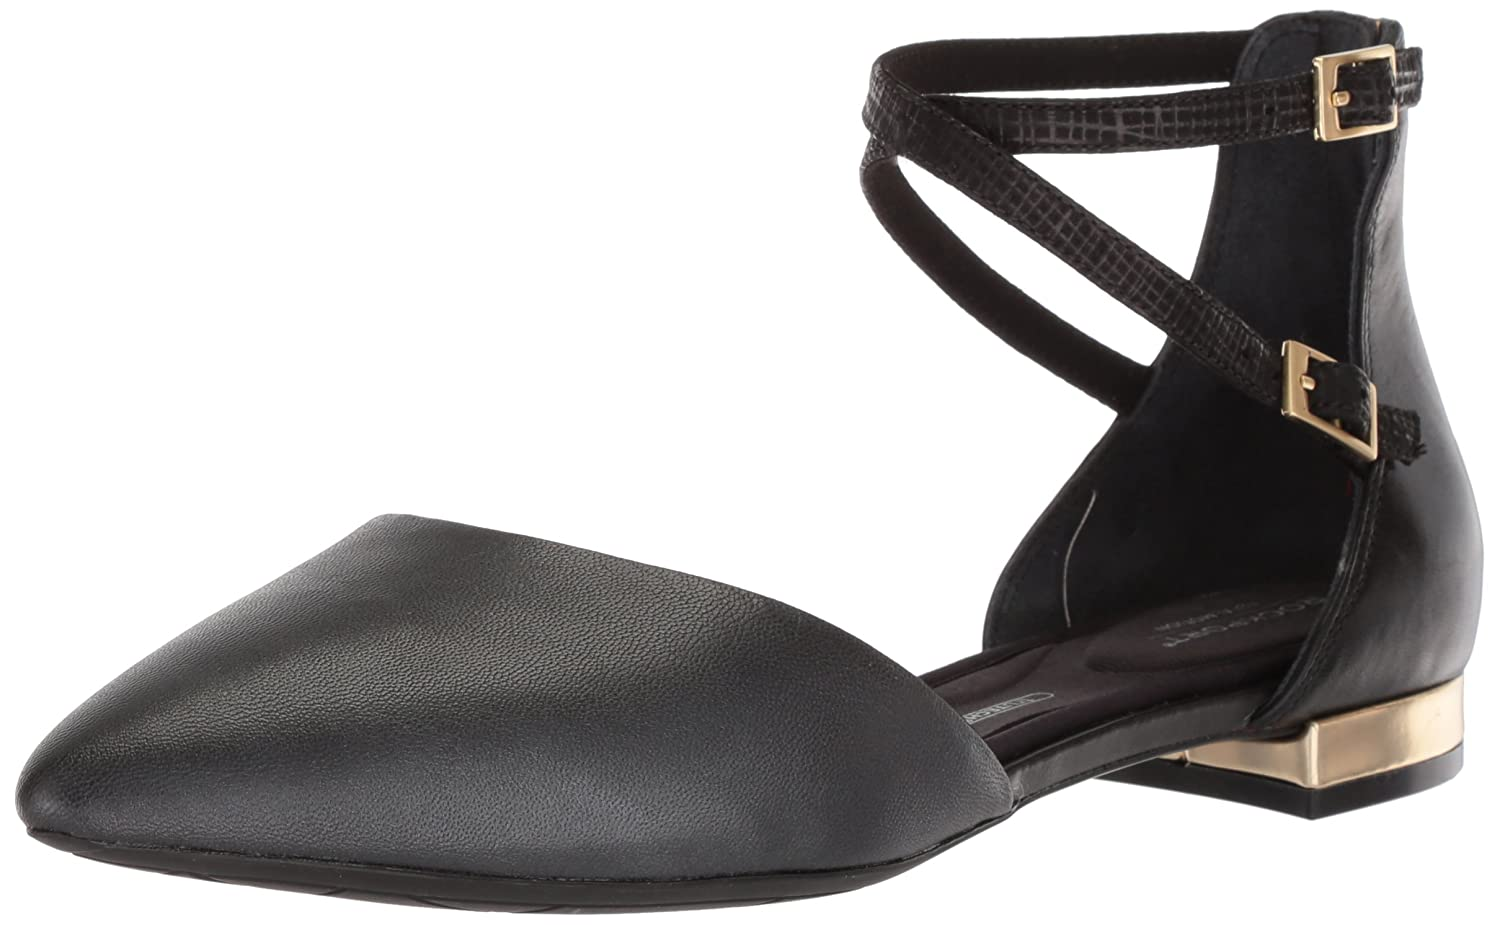 Rockport Women's Total Motion Adelyn Ankle Ballet Flat B073ZRR11S 10 W US|Black